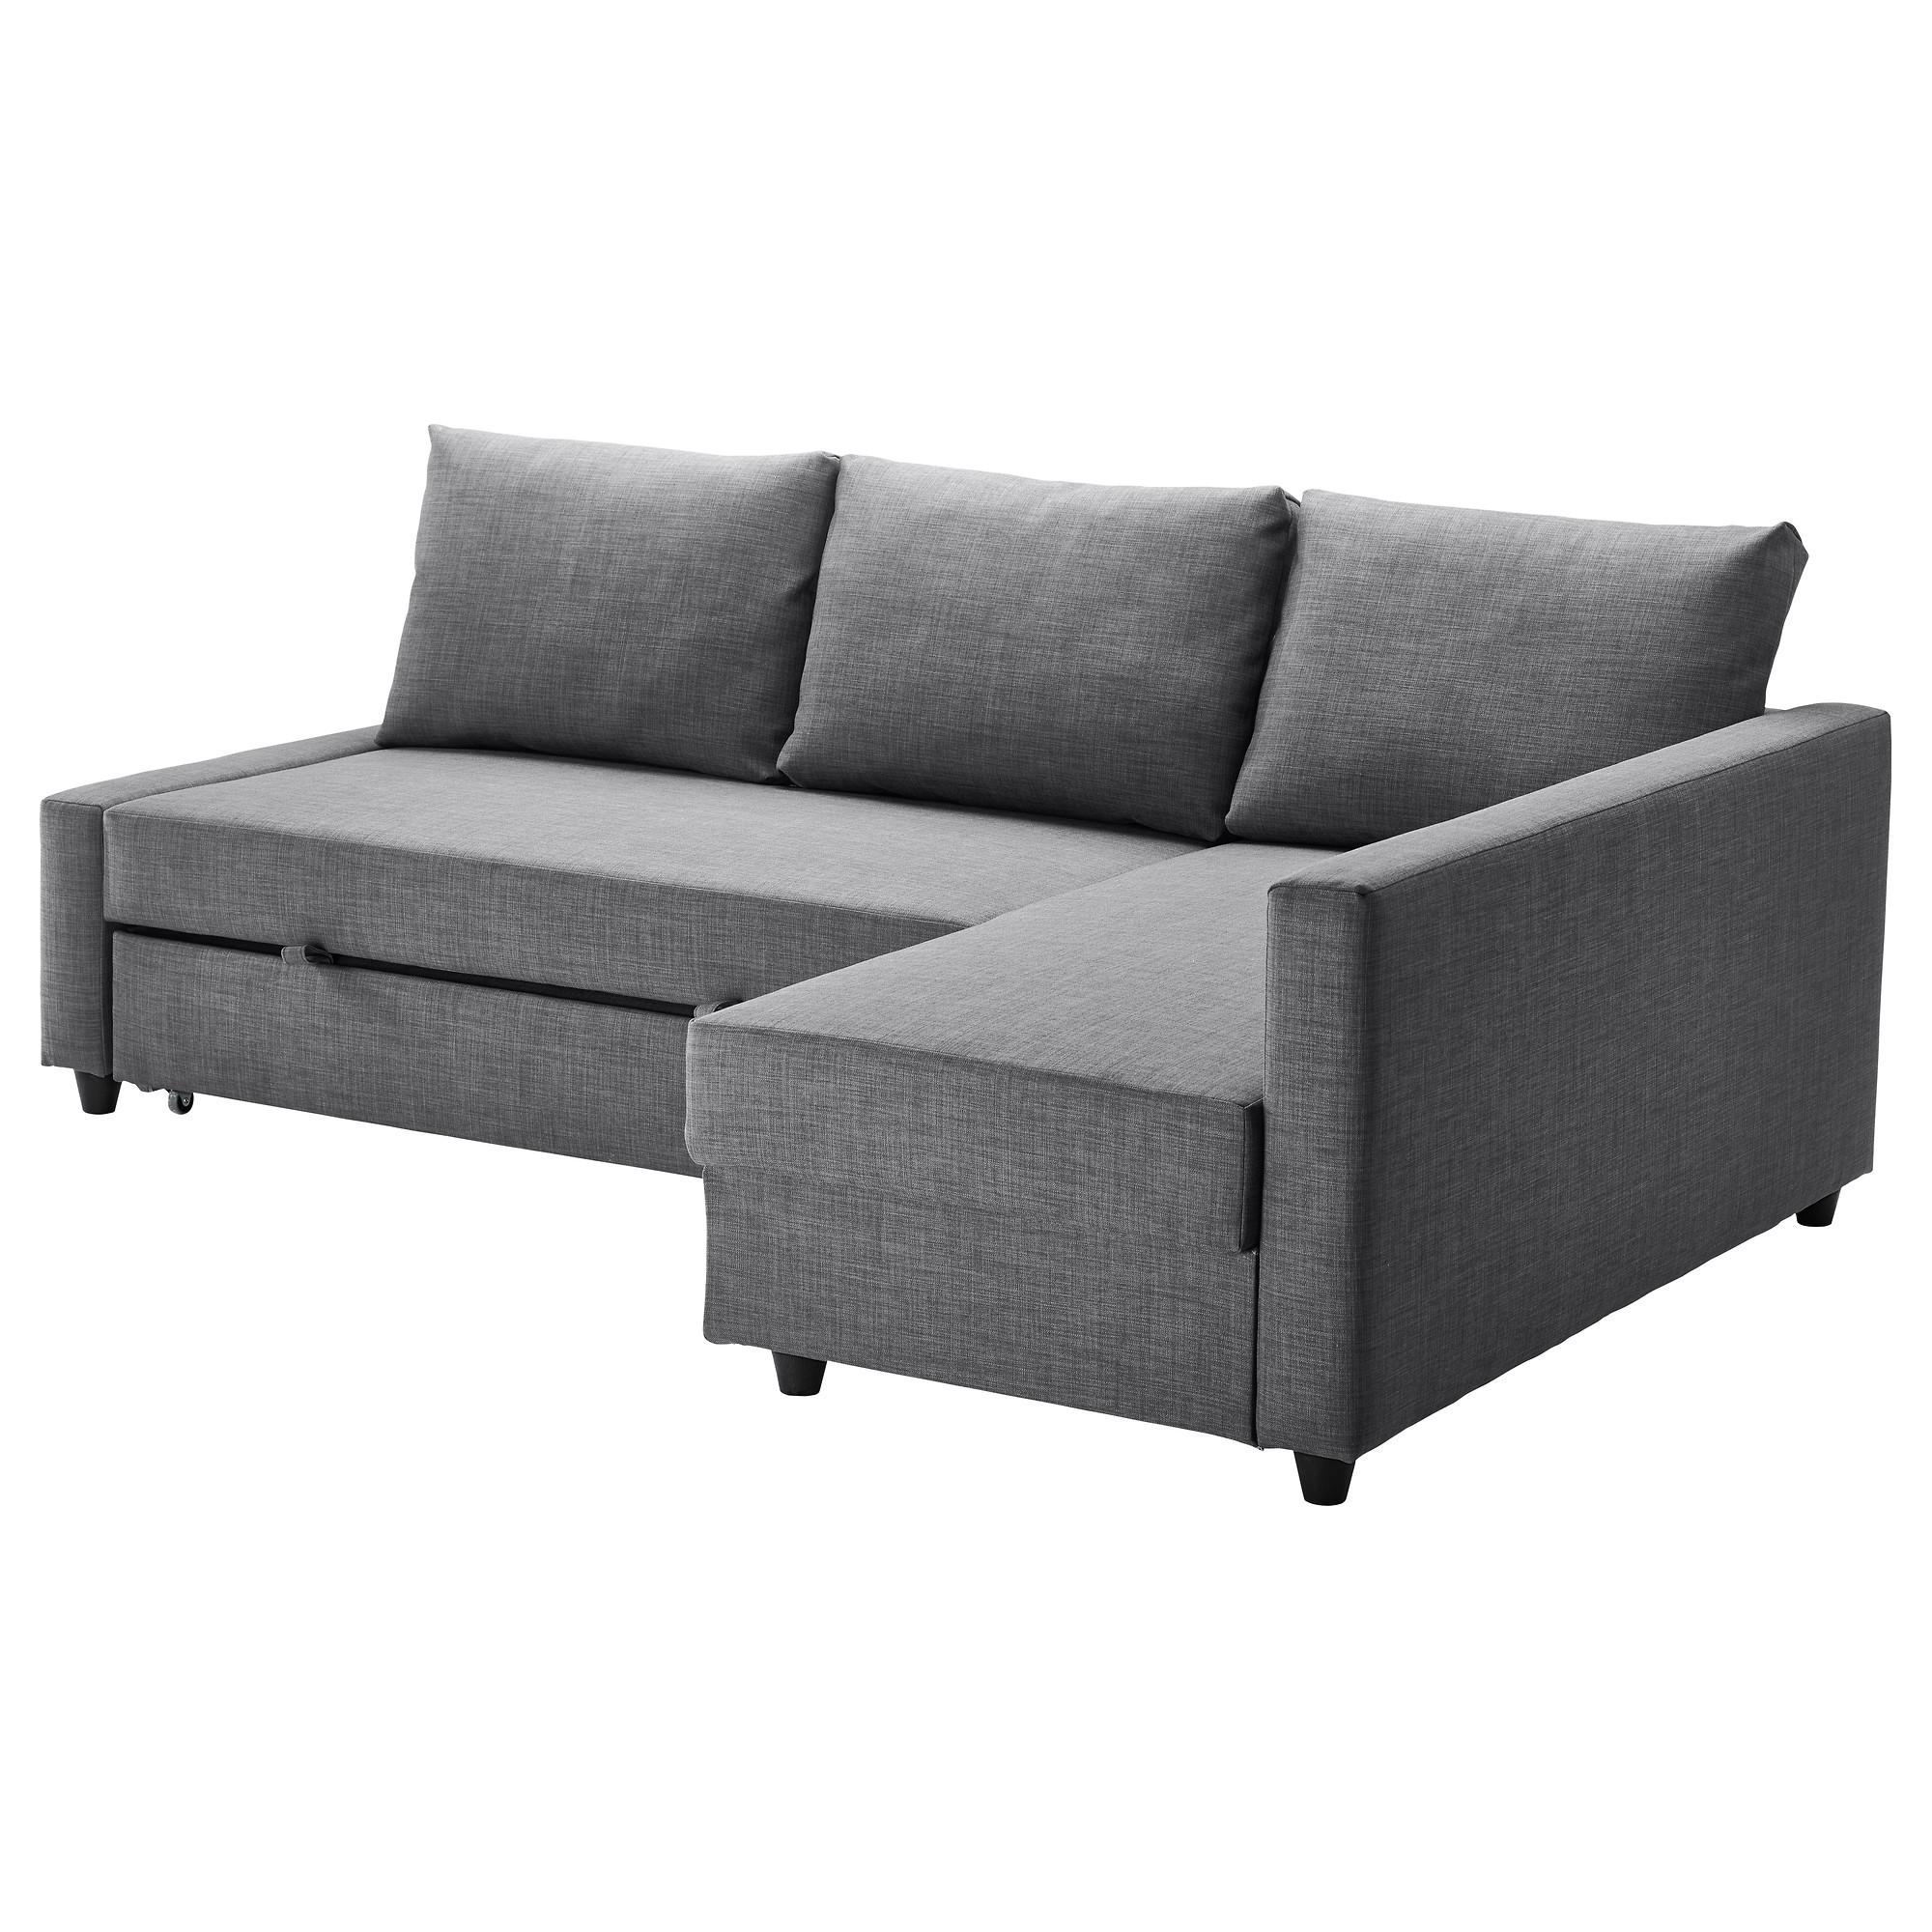 FRIHETEN Corner sofa-bed with storage, Skiftebo dark gray